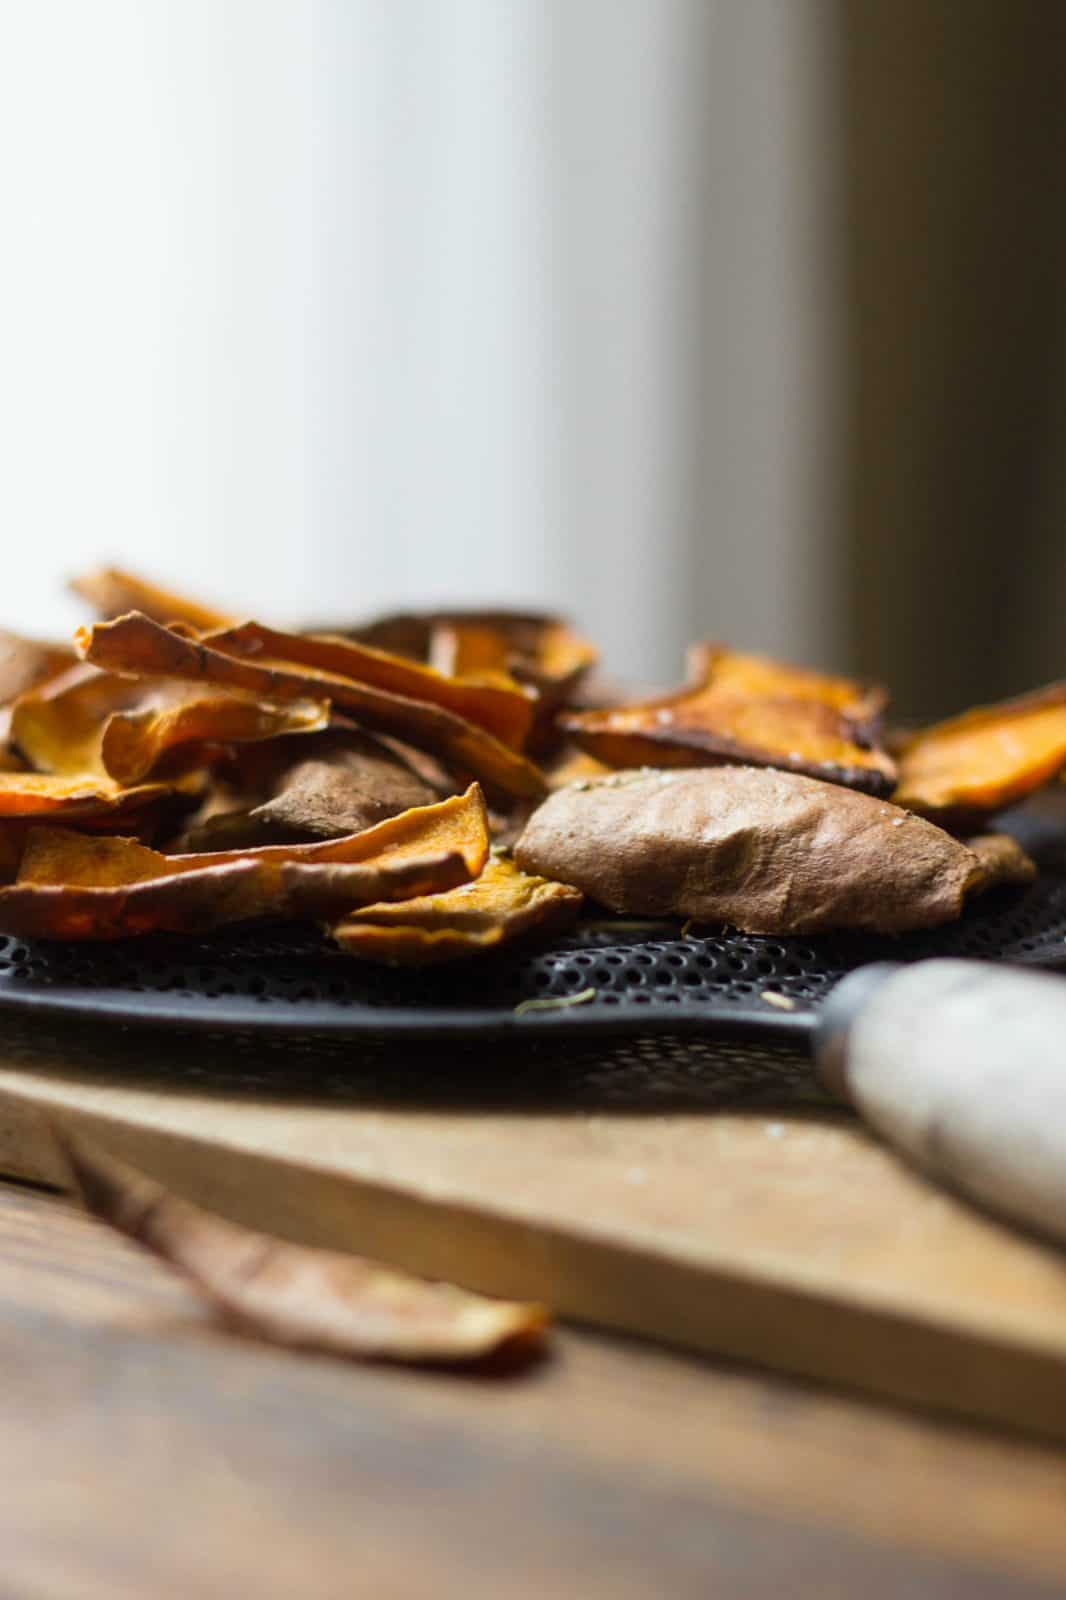 how to cook sweet potato with skin on